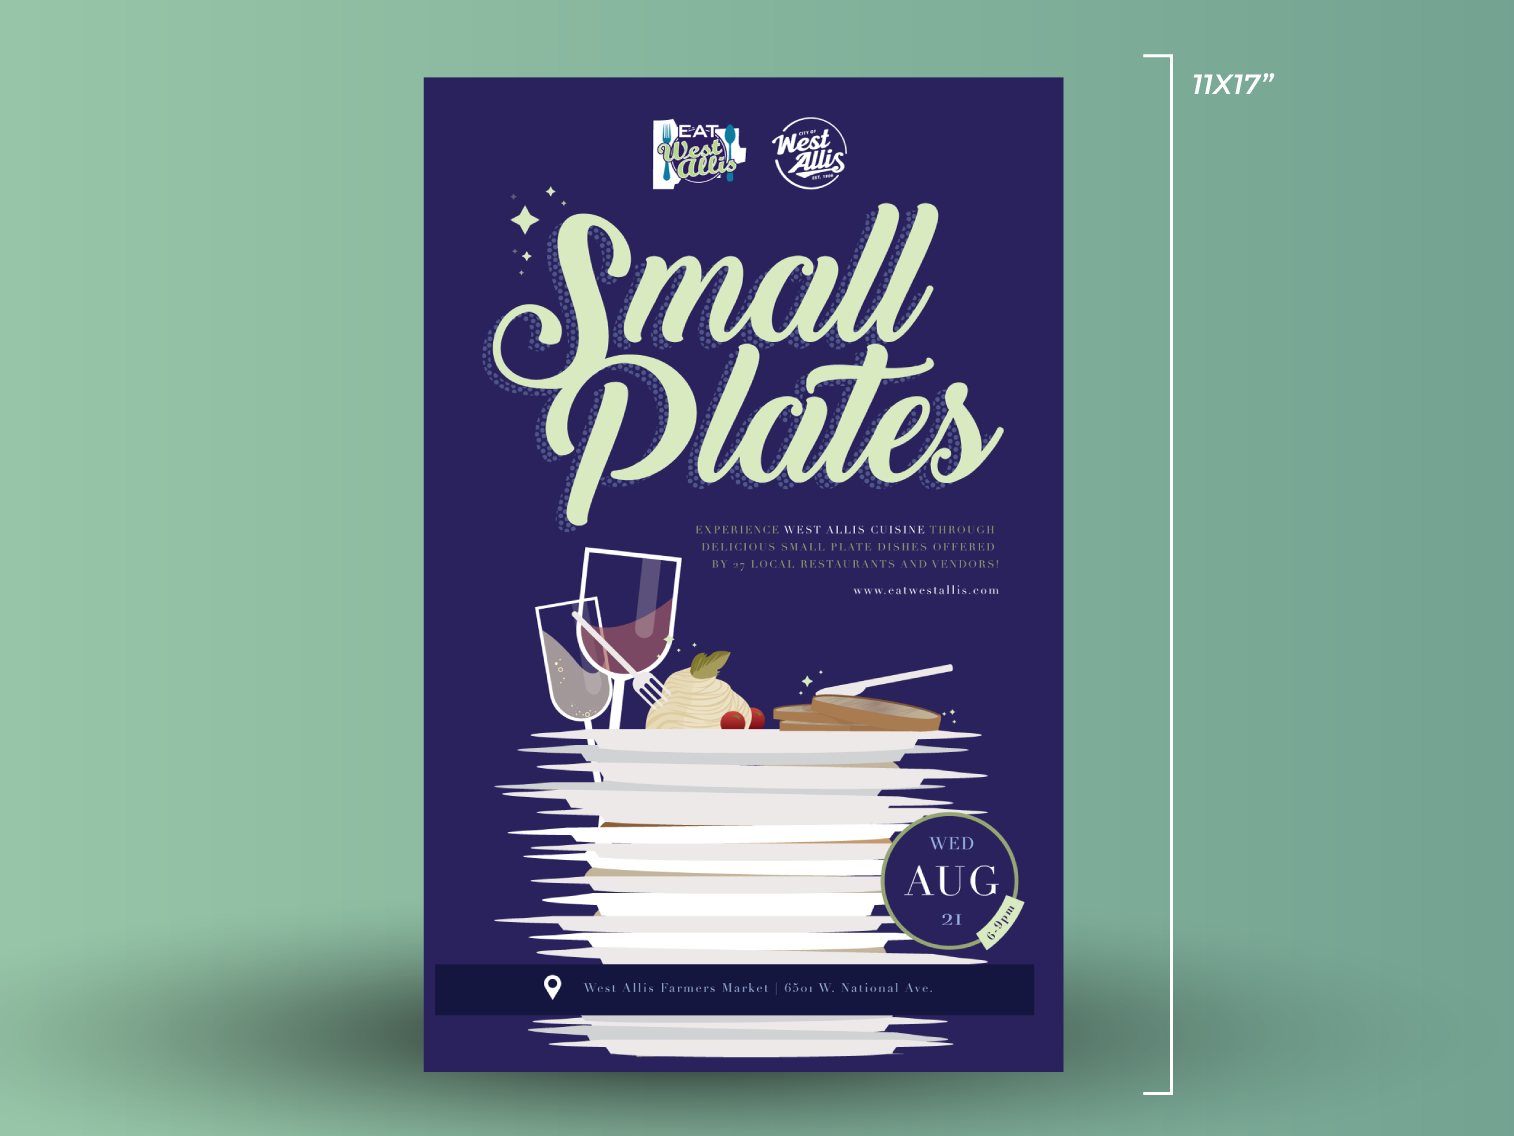 Small Plates Poster logo typography branding vector graphic design illustrator illustration design